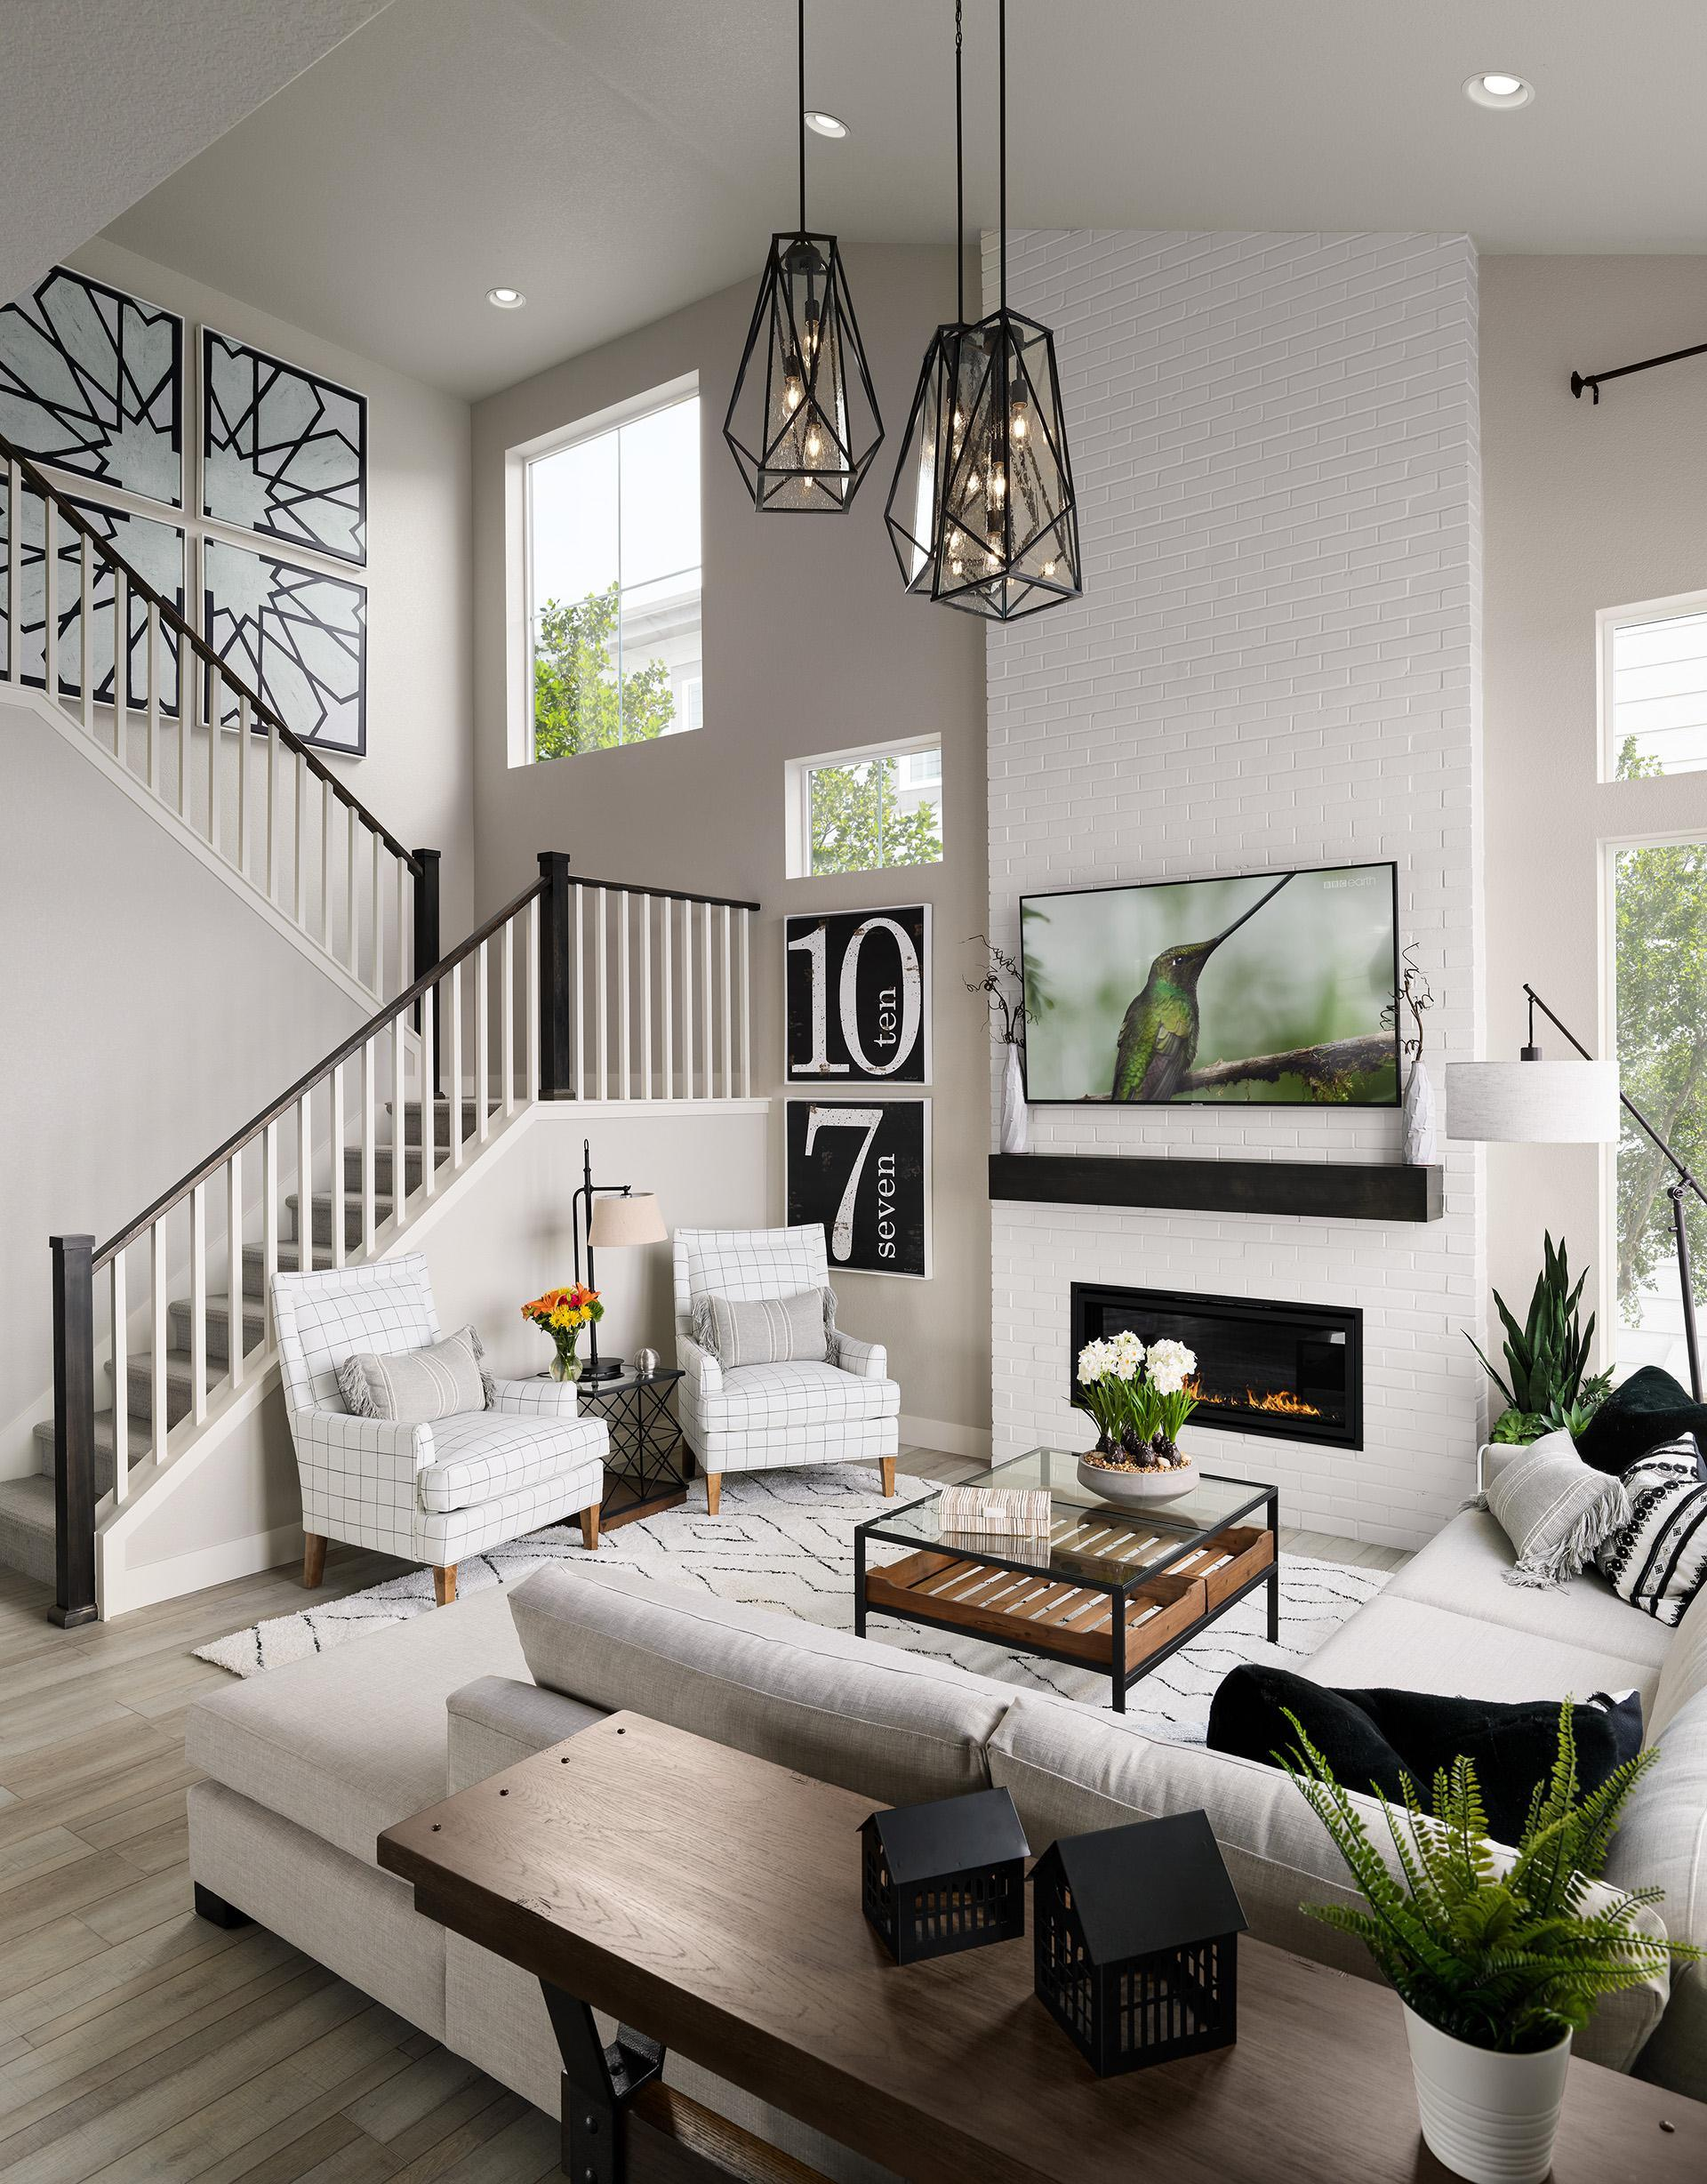 'The Canyons' by Berkeley Homes in Denver